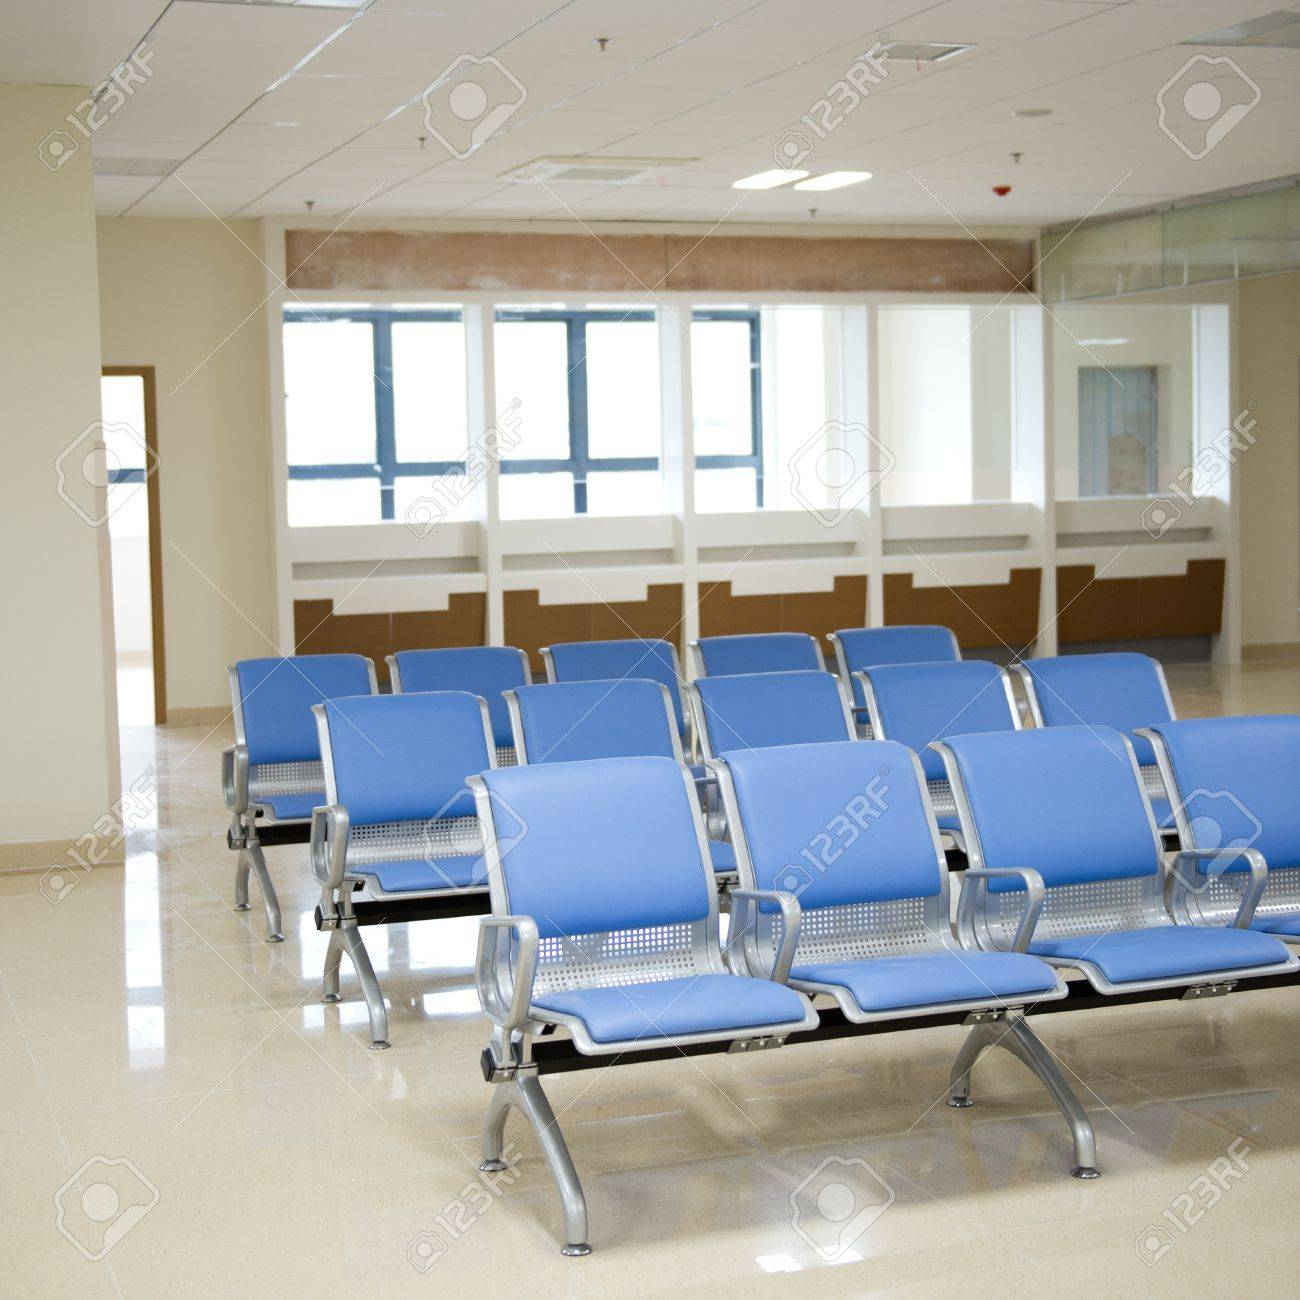 Hospital Waiting Room Pictures